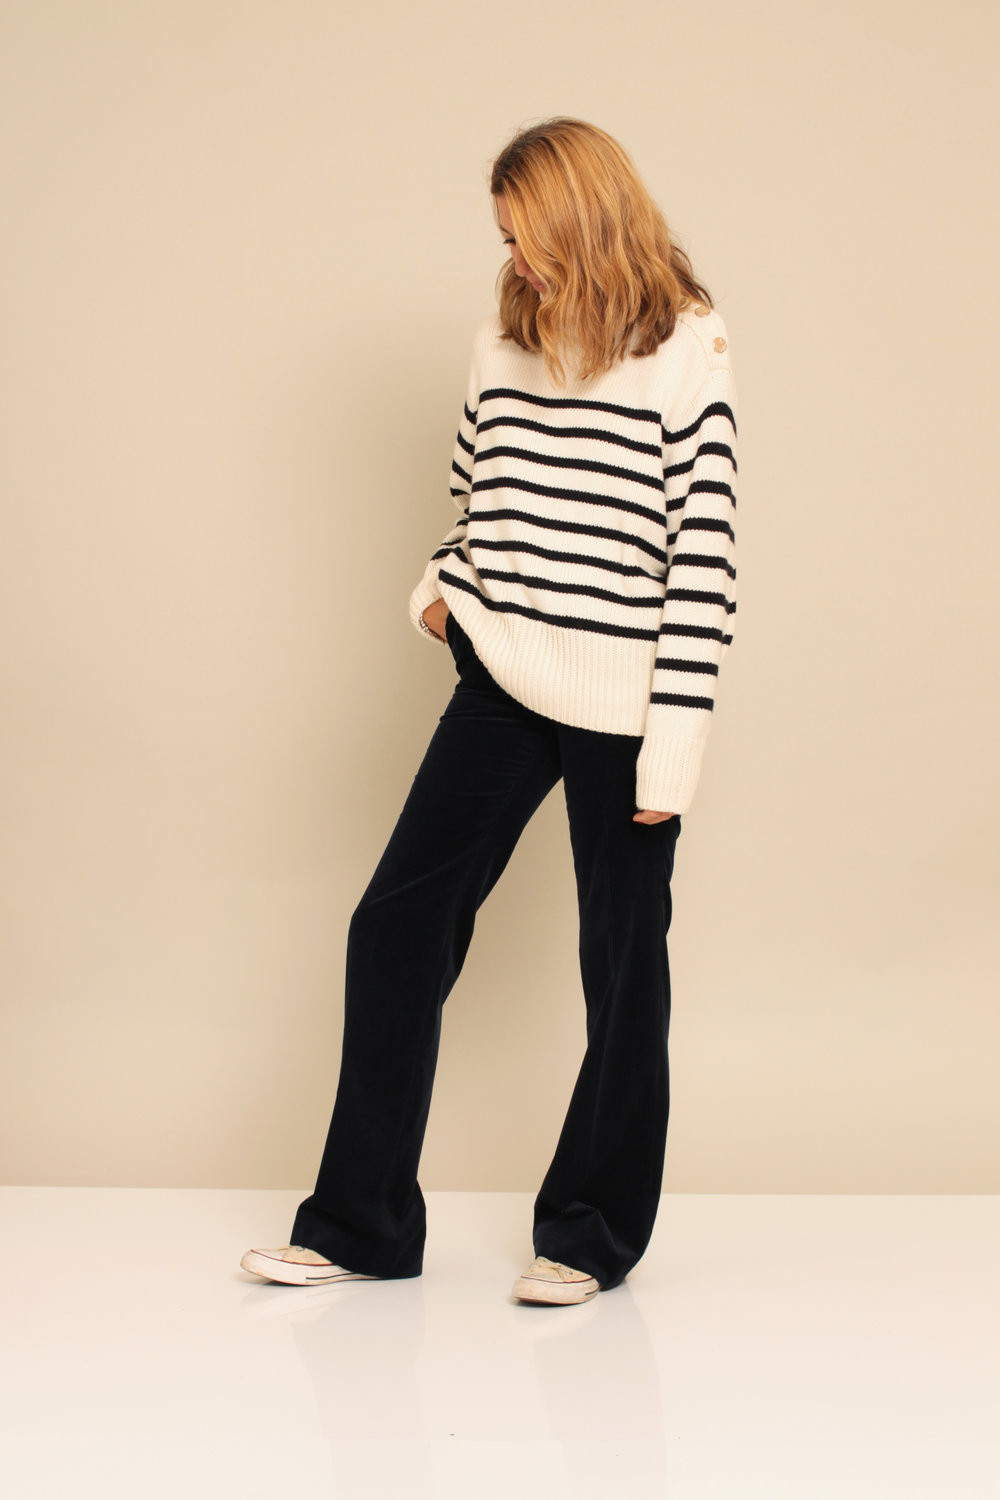 Jumper: £39.99  Zara  The perfect weekend sweater Lovely button detail on the shoulder  Trousers: £79.95  Massimo Dutti